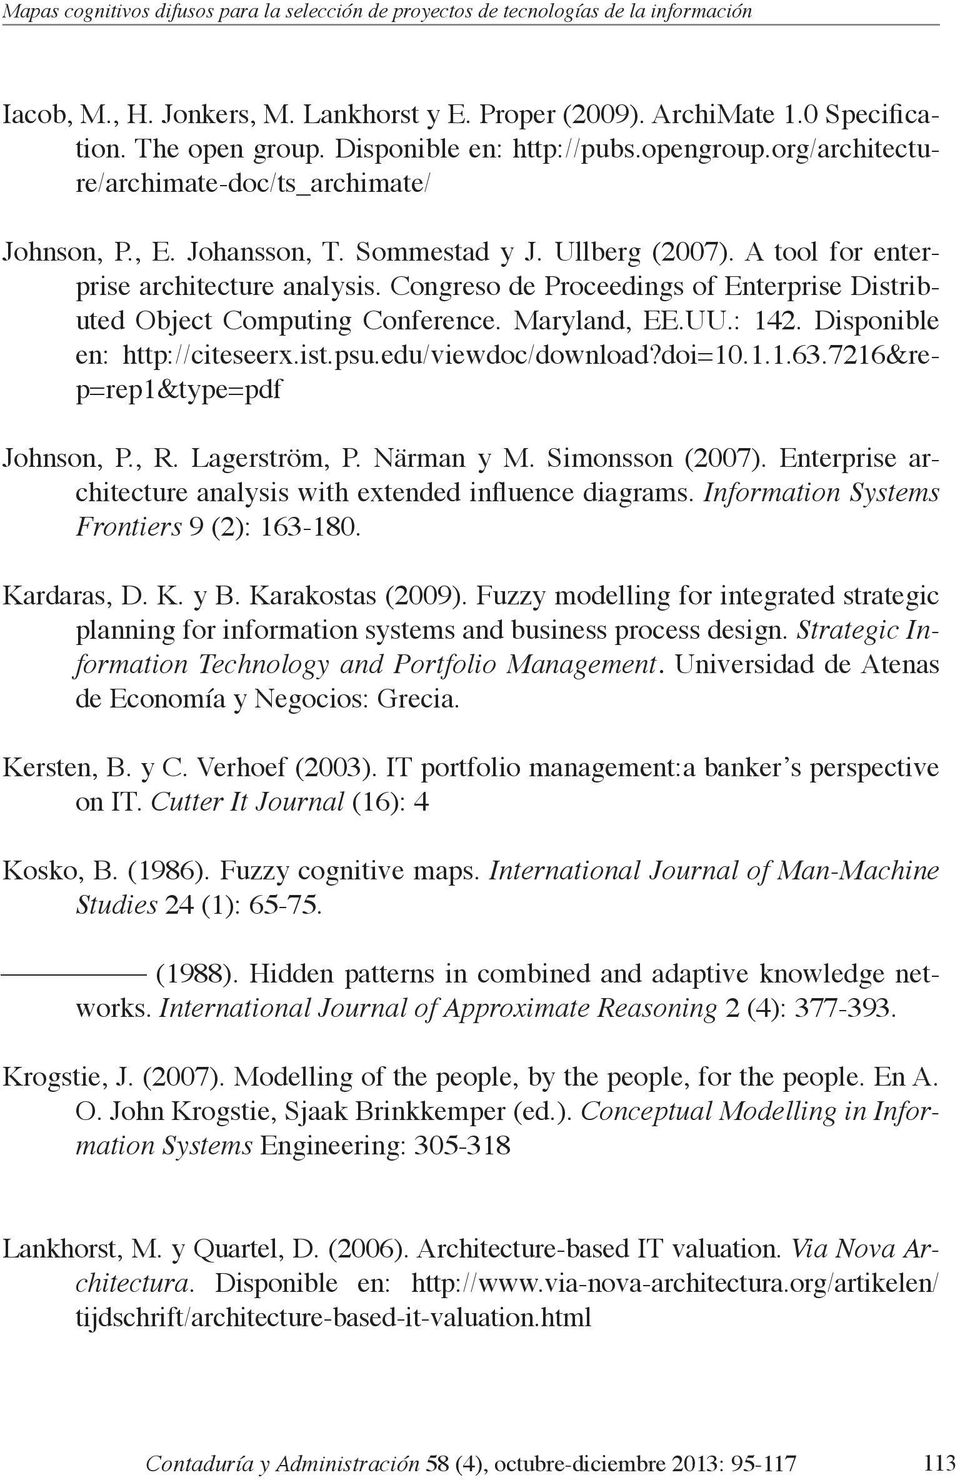 Congreso de Proceedings of Enterprise Distributed Object Computing Conference. Maryland, EE.UU.: 142. Disponible en: http://citeseerx.ist.psu.edu/viewdoc/download?doi=10.1.1.63.